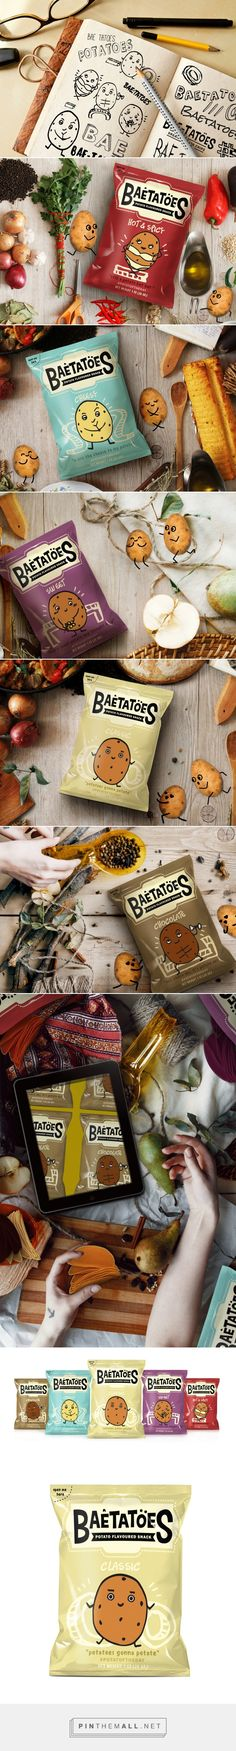 Baetatoes - Packaging of the World - Creative Package Design Gallery - http://www.packagingoftheworld.com/2016/08/baetatoes.html